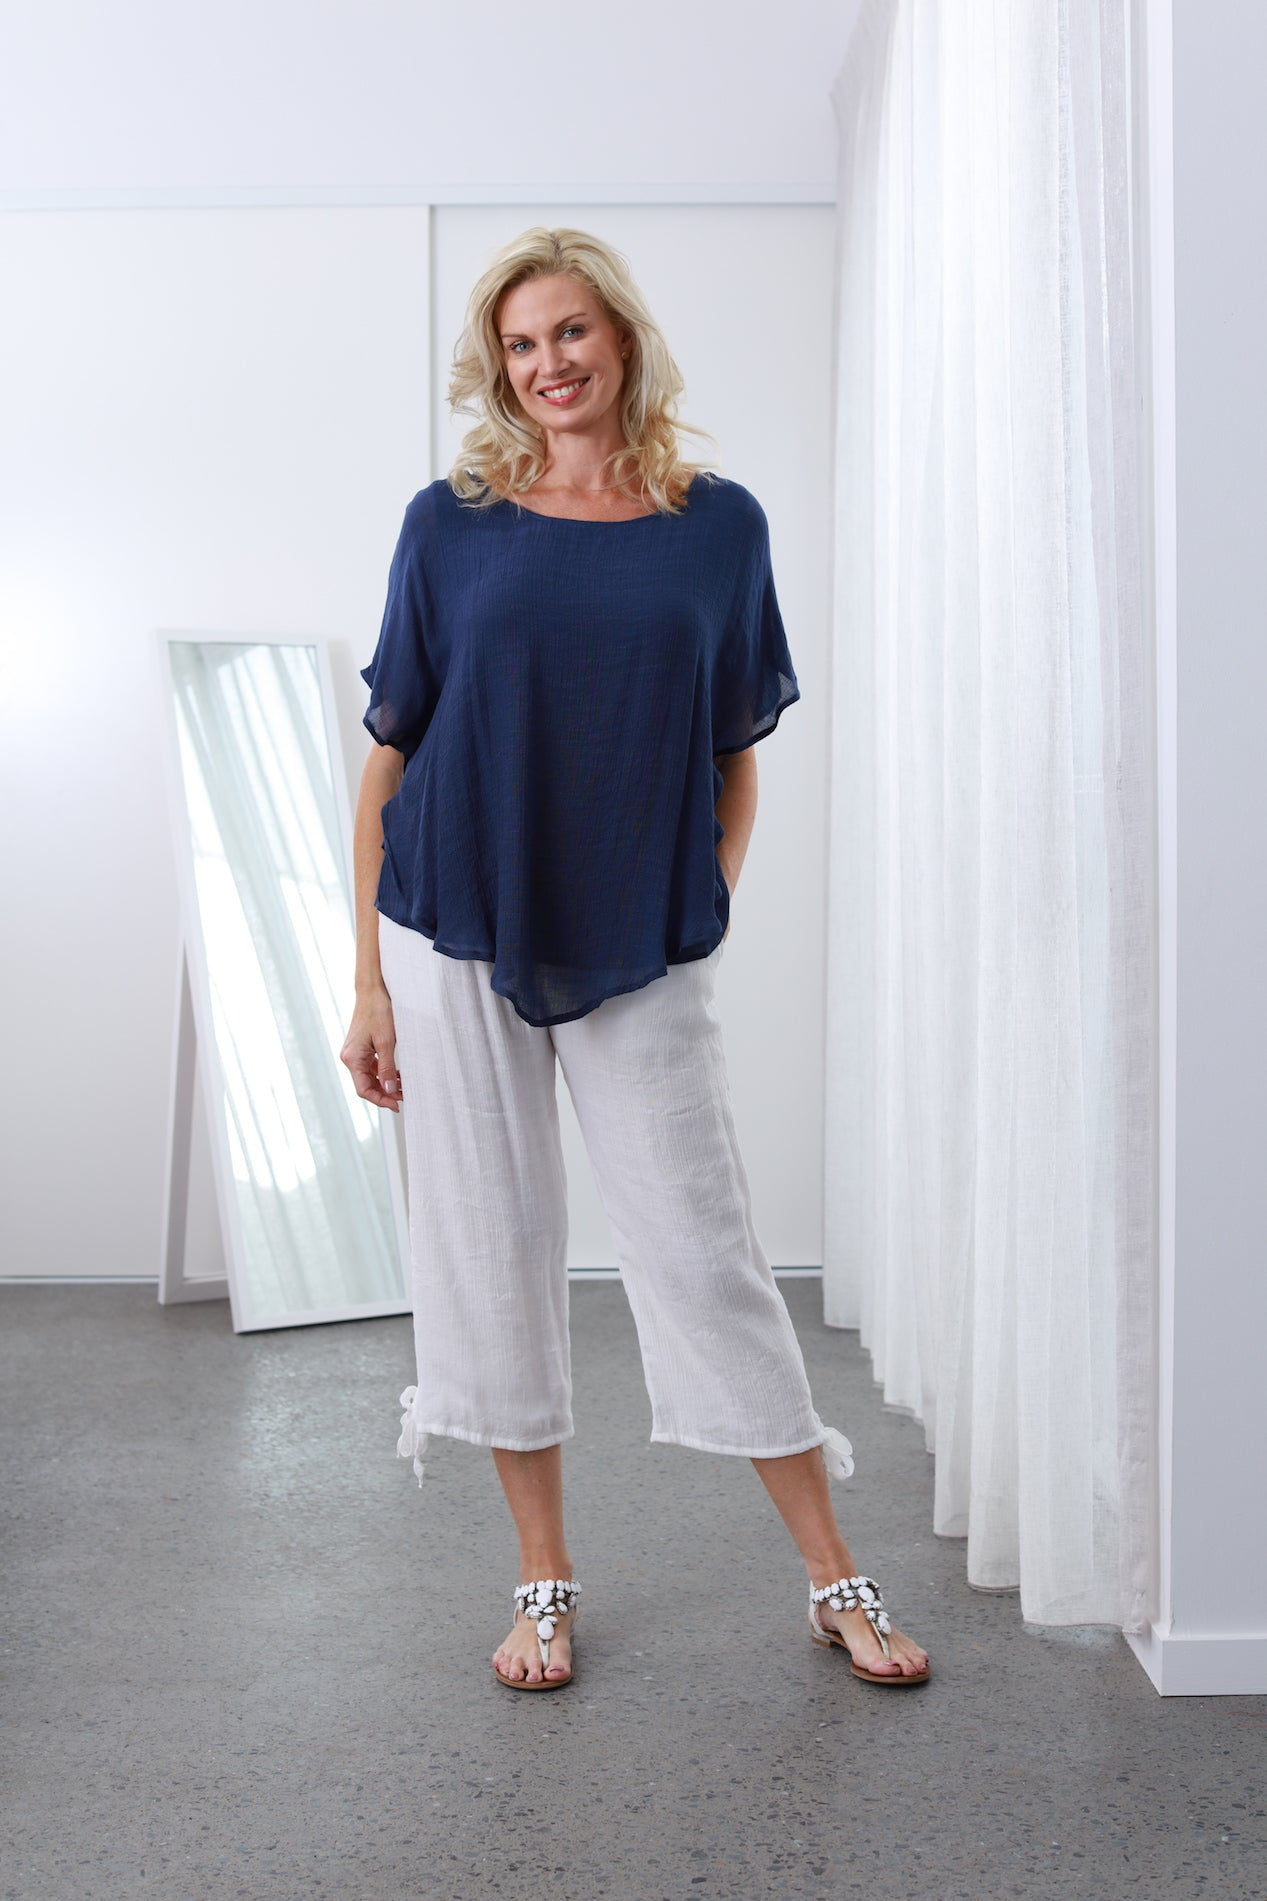 Bamboo Navy Blue Top Cool Comfortable No ironing needed